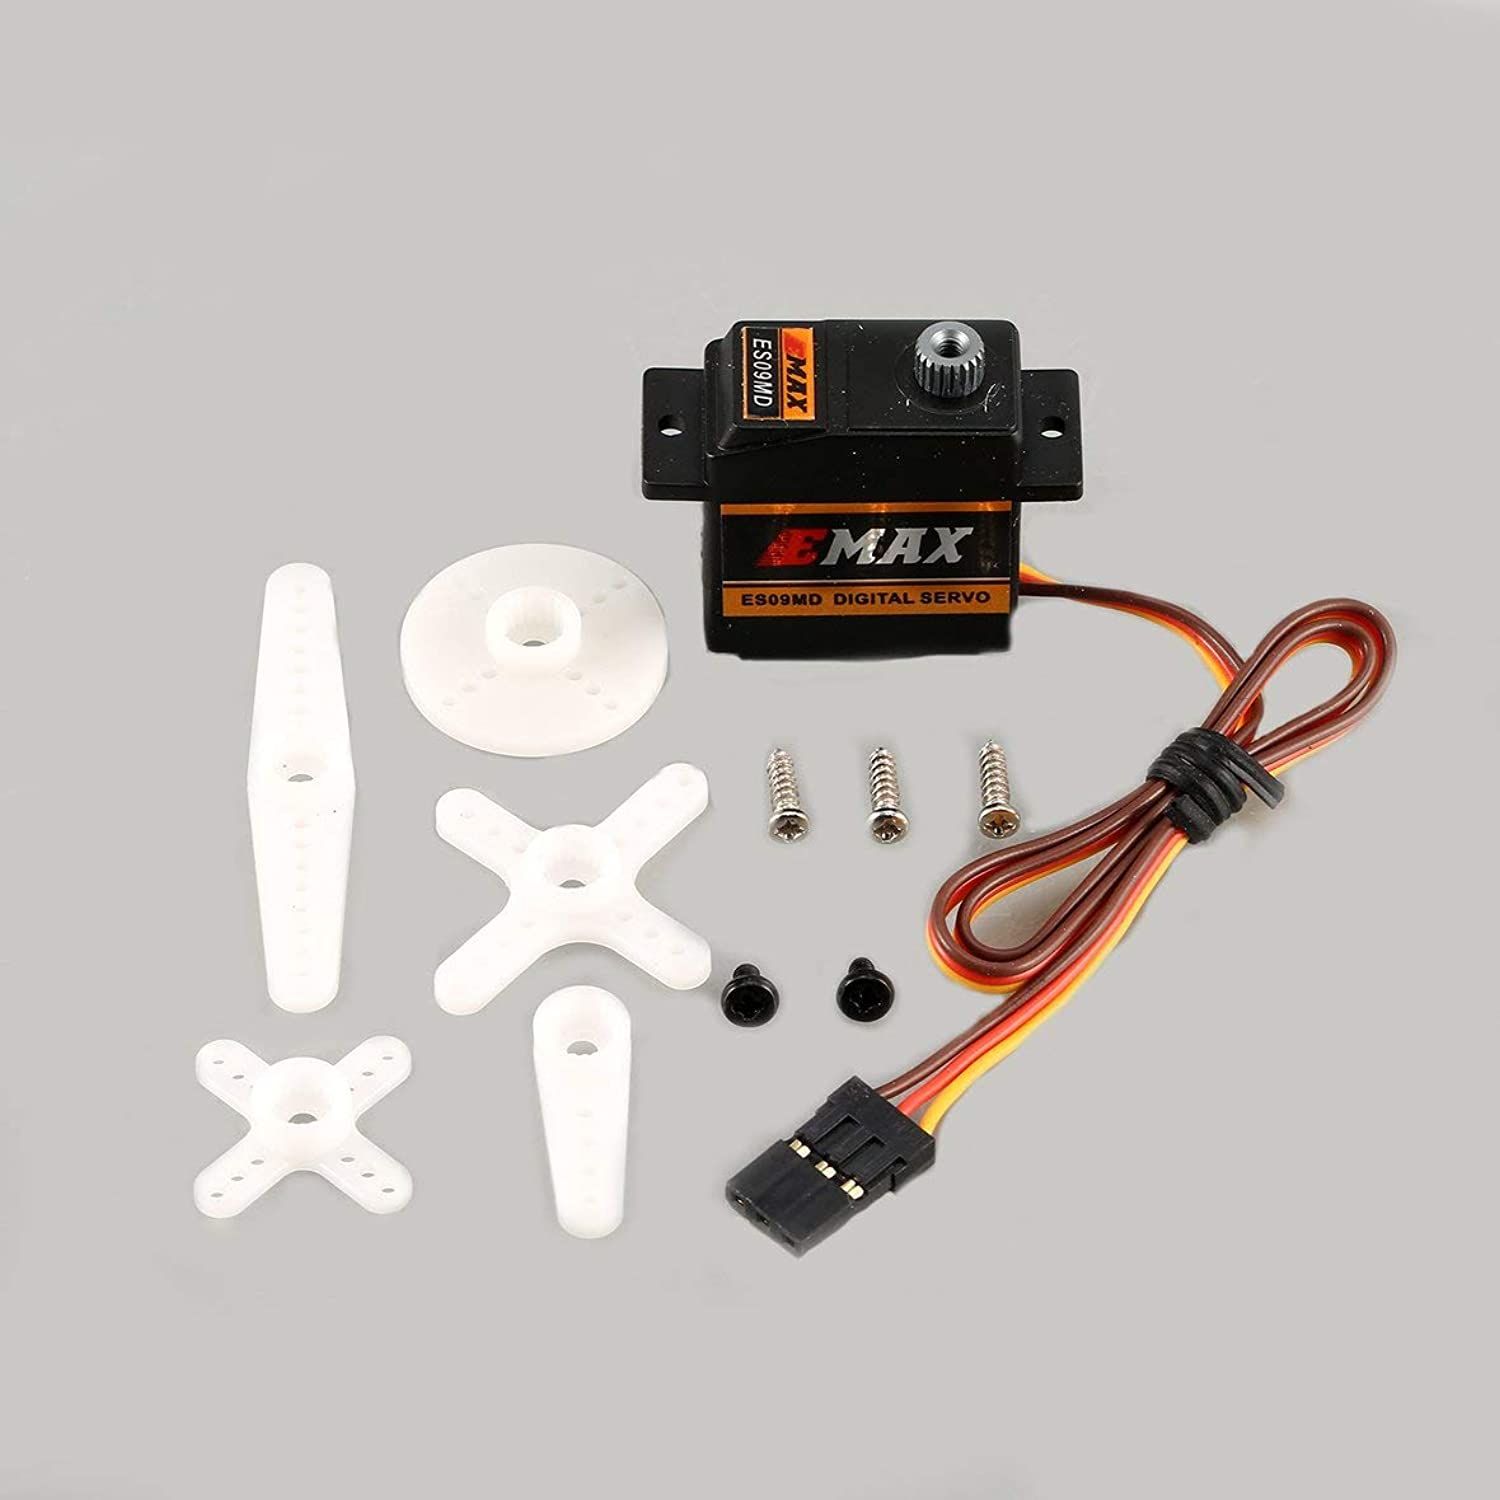 Tivolii for EMAX Digital Metal Gear Servo ES09MD 4.8-6V 2.6kg 0.10 0.08 Sec 60 Degree for RC 450 Helicopter Airplane Copter Accessories